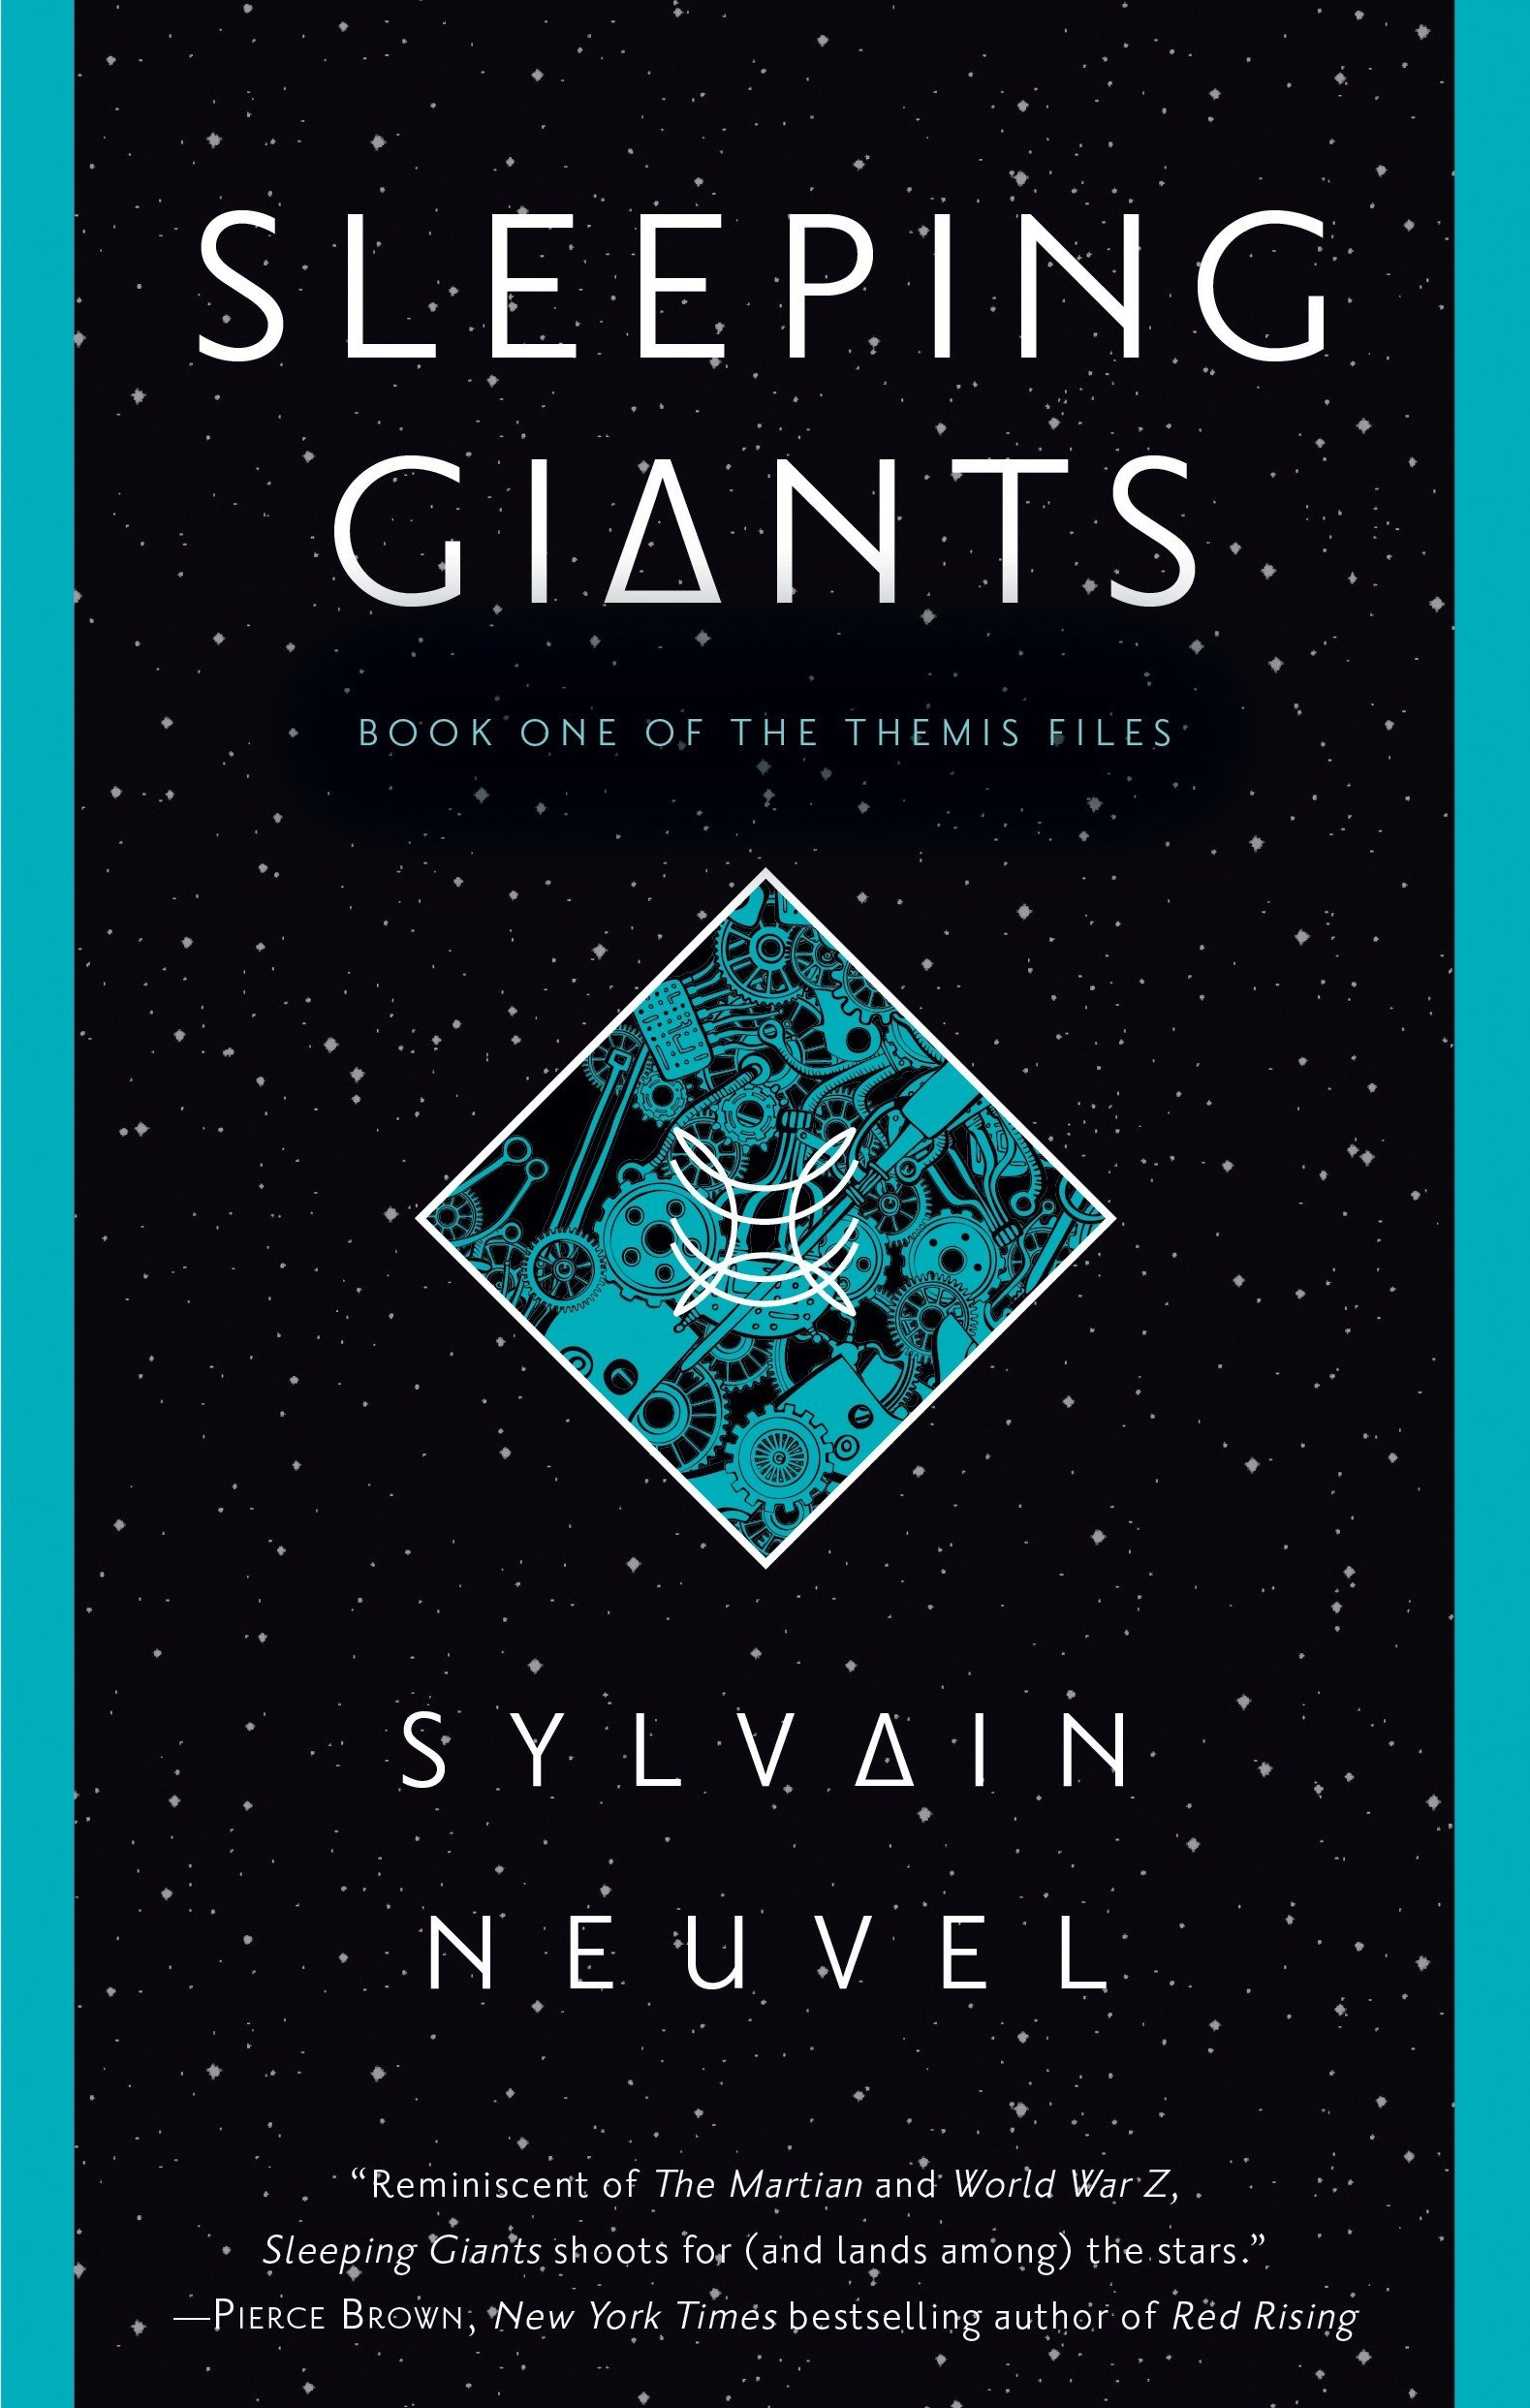 Solutions manual cogg hill camping equipment practice set ebook amazon sleeping giants the themis files 9781101886717 amazon sleeping giants the themis files 9781101886717 sylvain neuvel fandeluxe Image collections